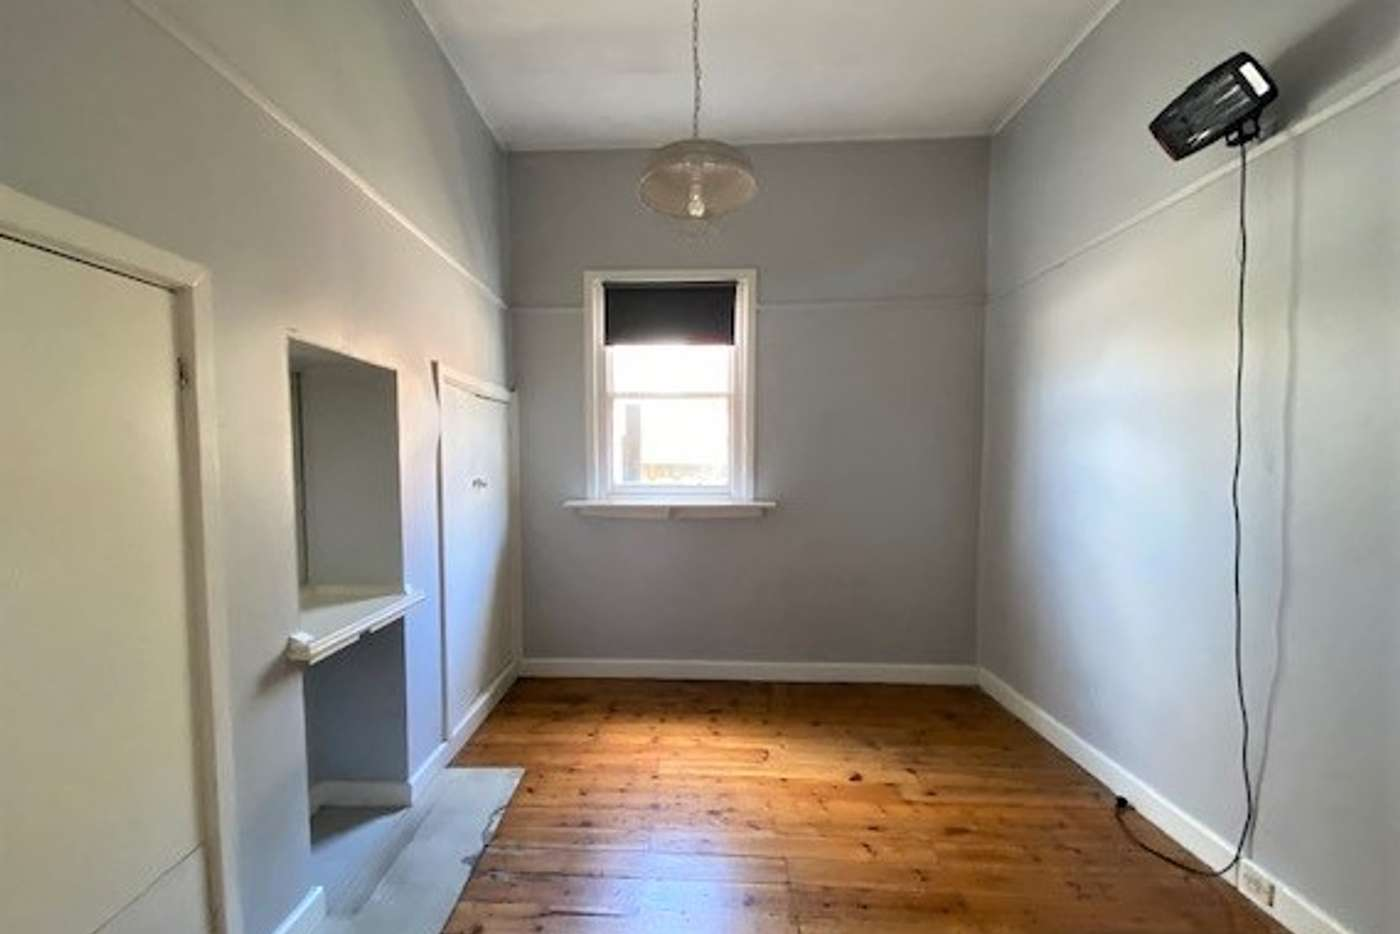 Sixth view of Homely house listing, 28 Shelley Street, Richmond VIC 3121